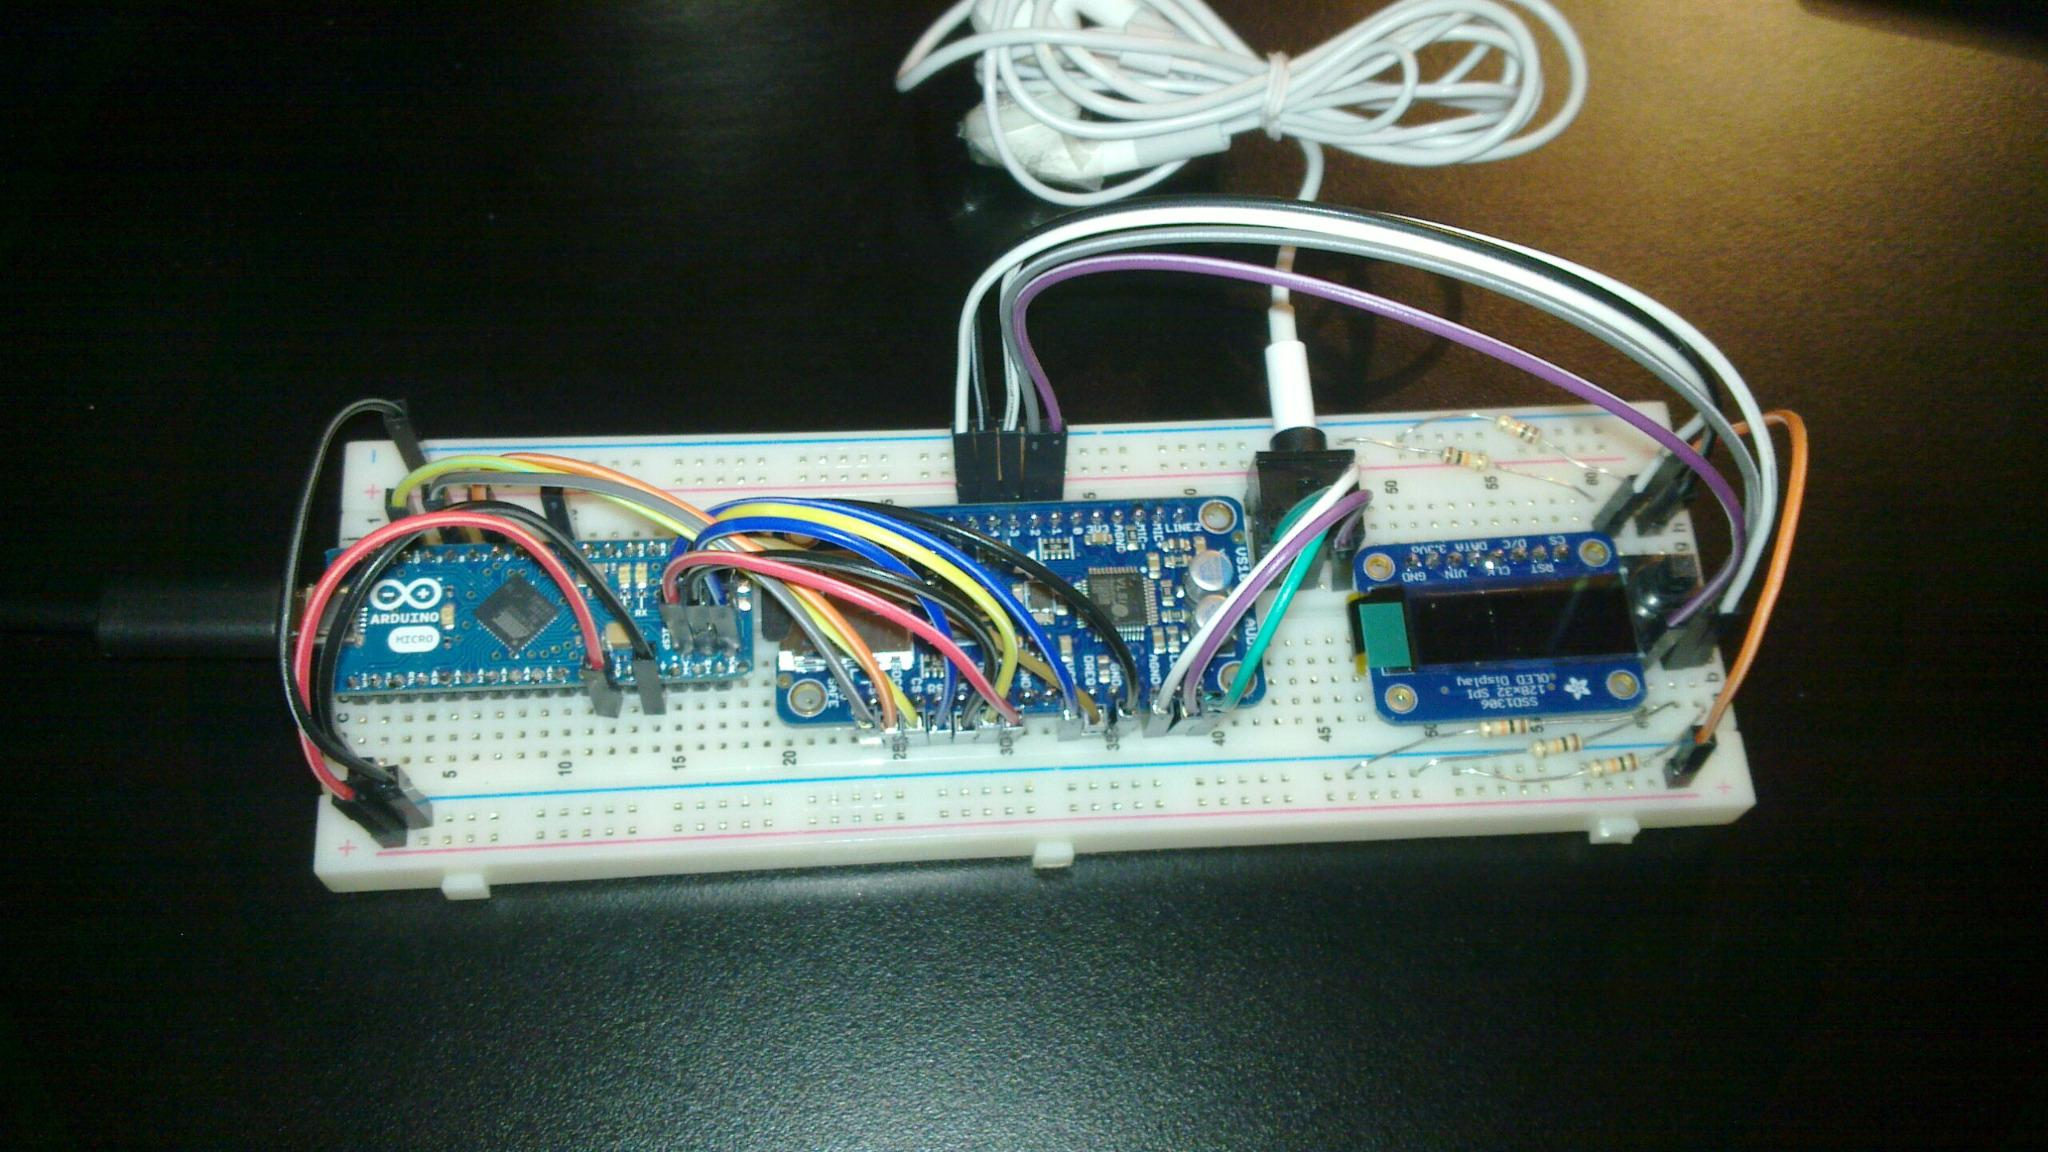 Arduino micro connected to DSP with an OLED display